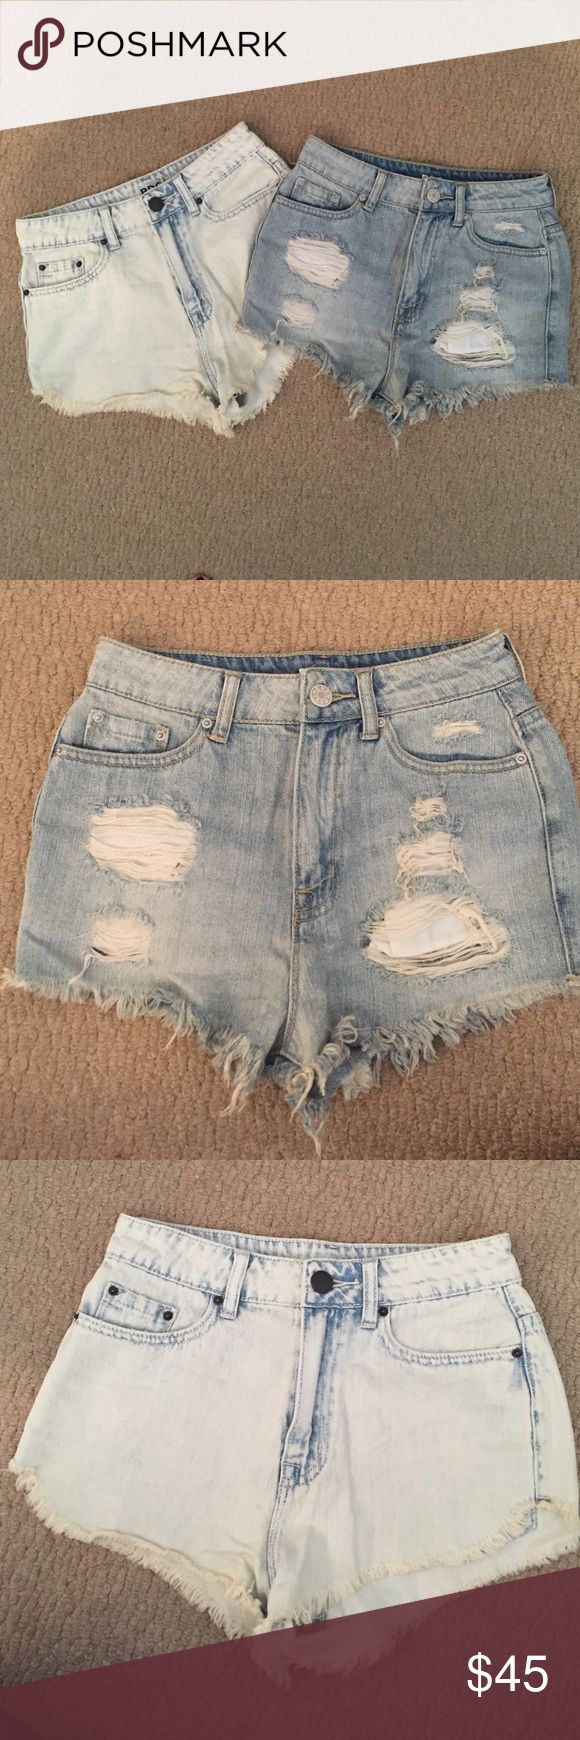 Set of 2 Urban Outfitters BDG denim shorts Set of 2 Urban Outfitters BDG denim shorts. Super high rise cheeky light denim shorts with rips in them. Super high rise Dolphin acid wash denim shorts. Both size 25. Only worn once or twice Urban Outfitters Shorts Jean Shorts